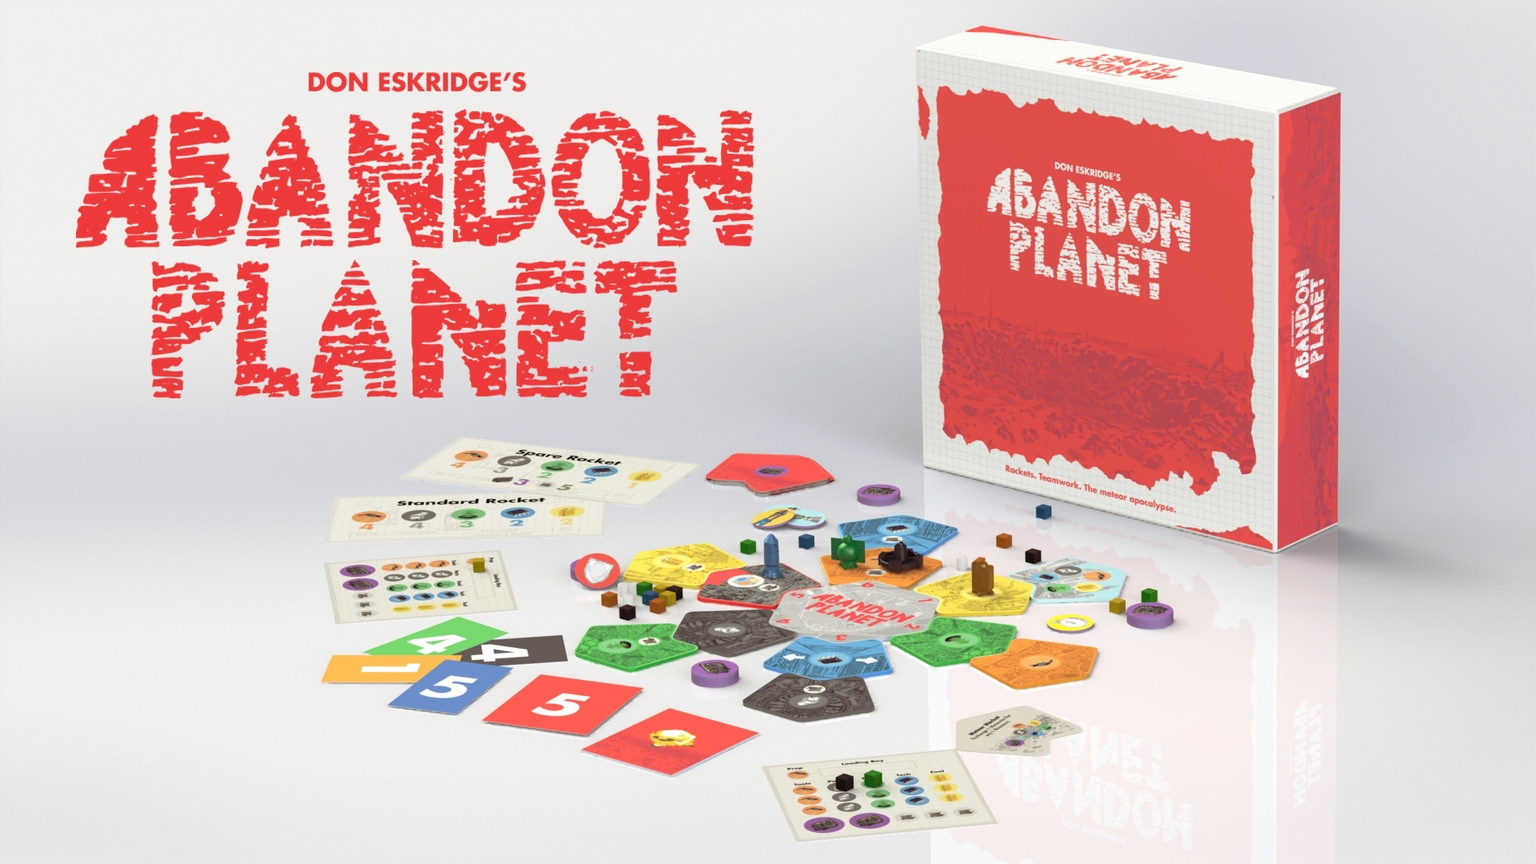 A board game for 4-8 players about building rockets and escaping the meteor apocalypse.